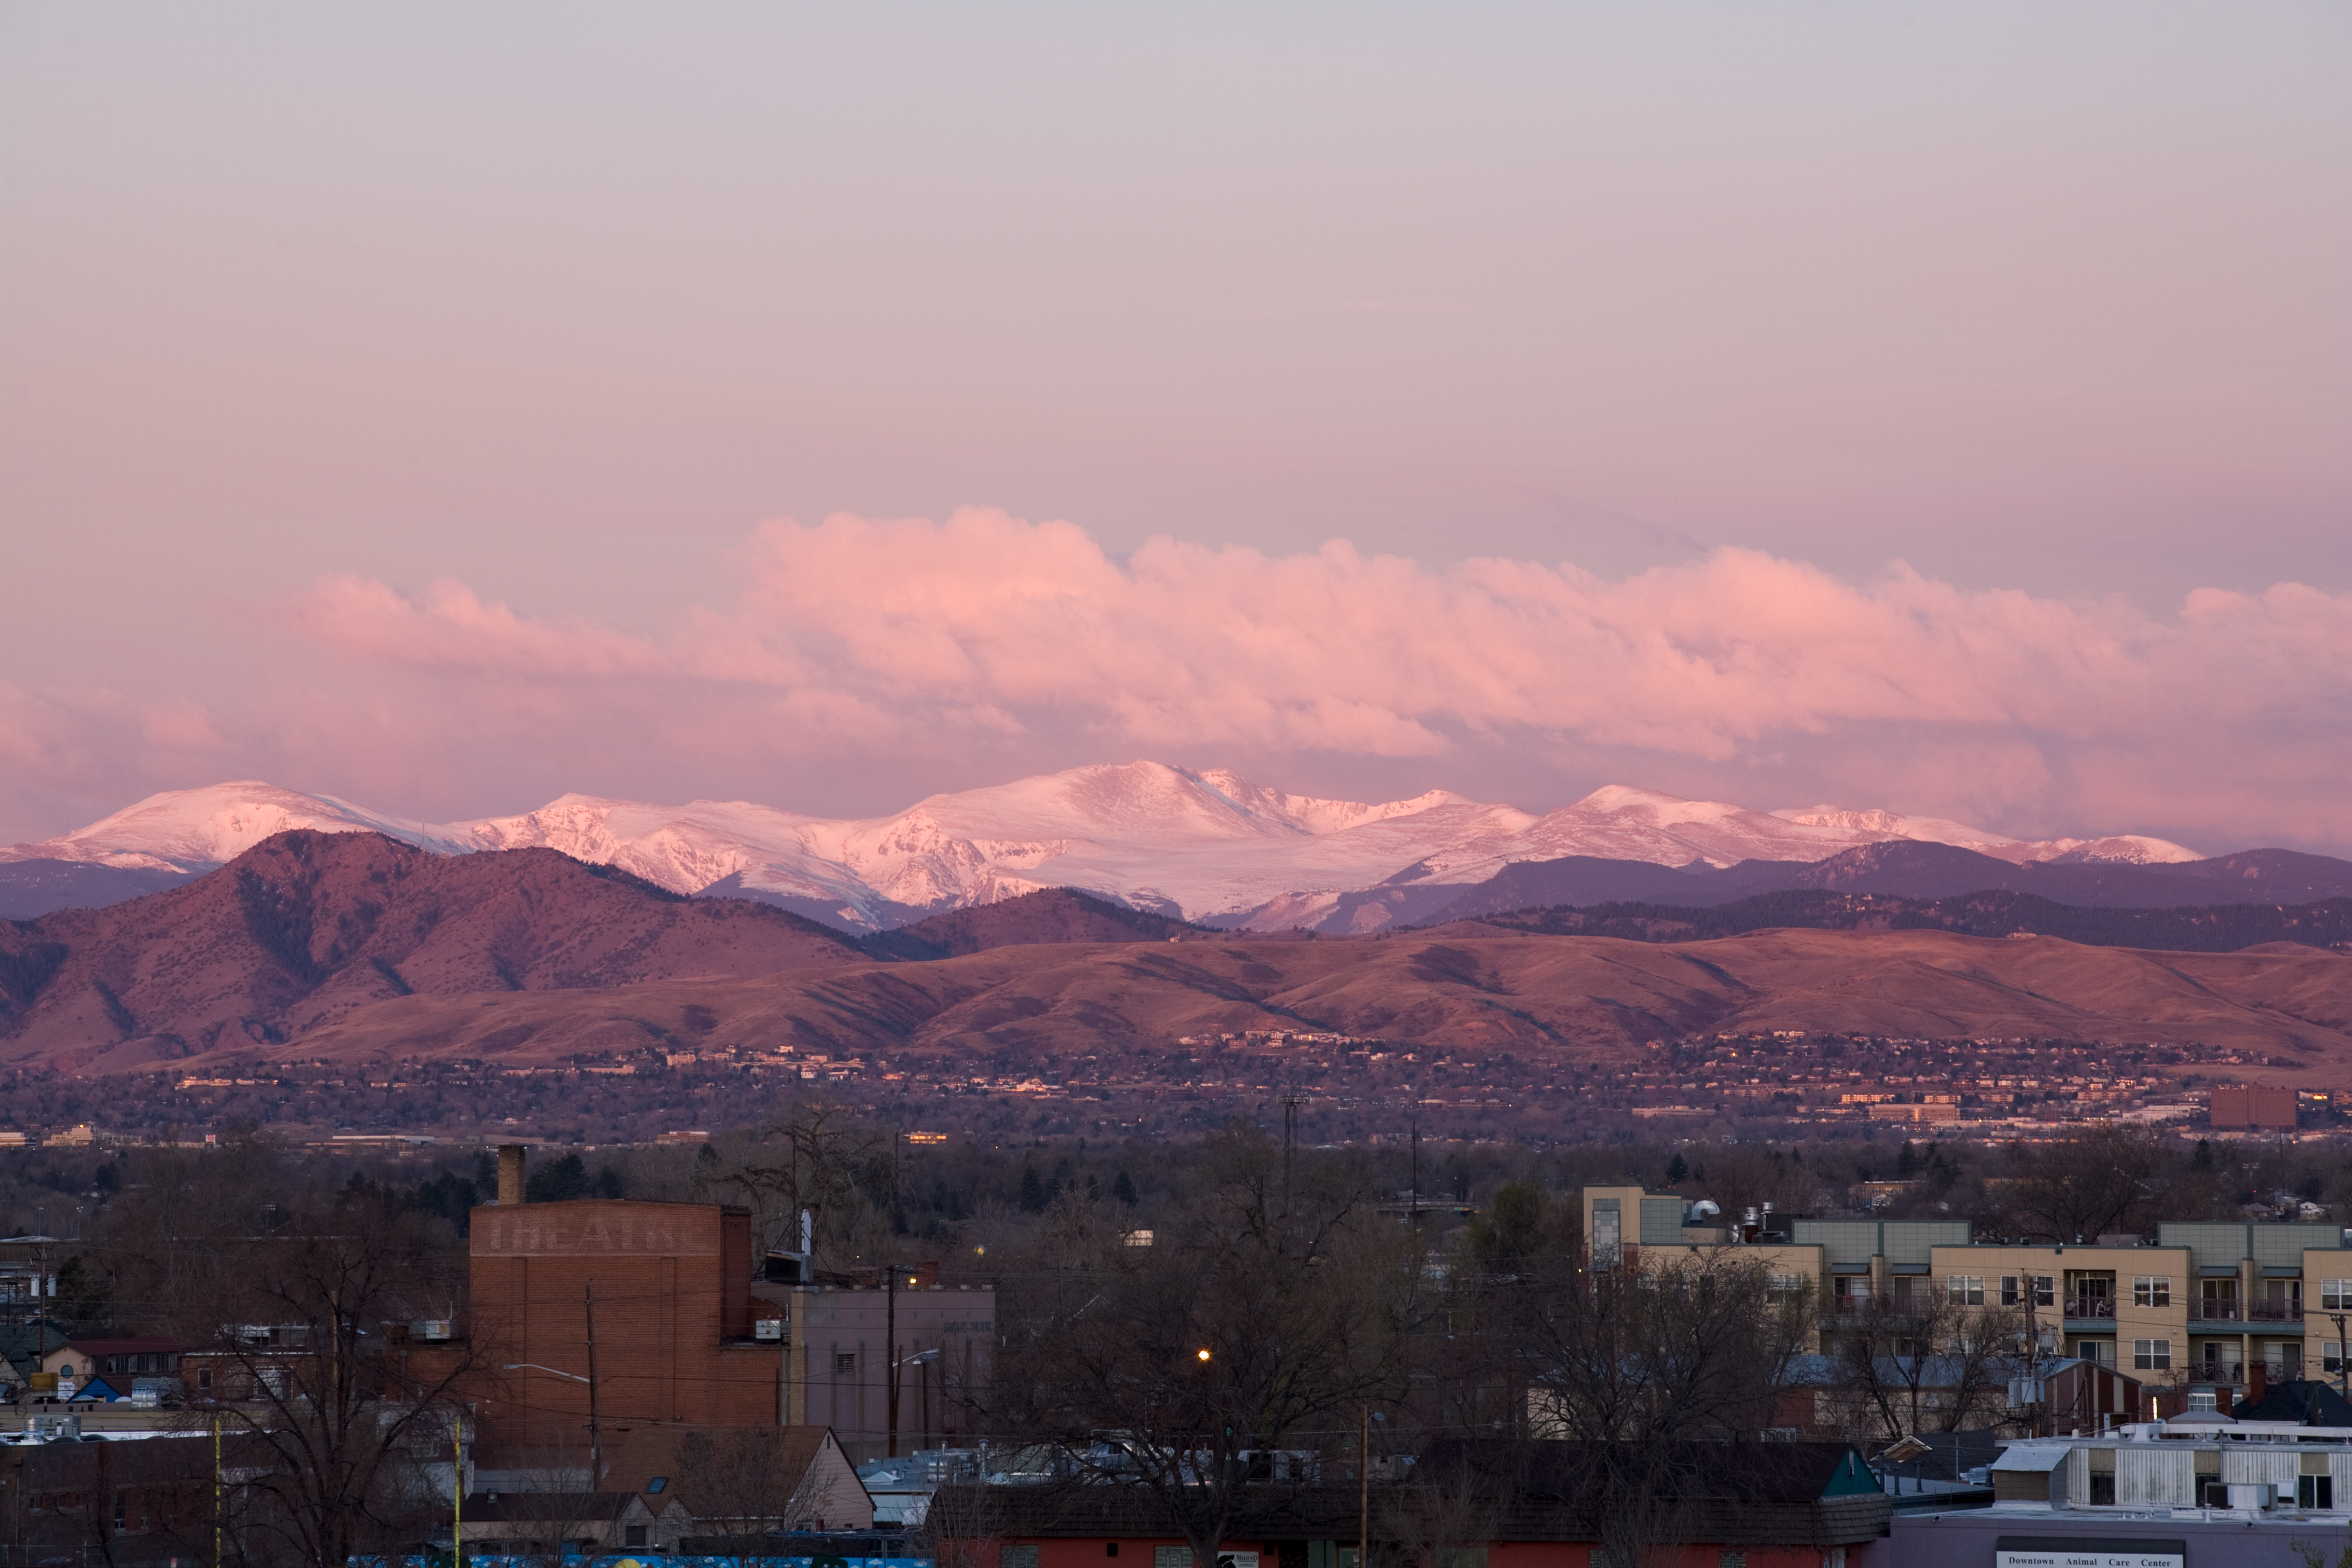 Mount Evans sunrise - April 1, 2011